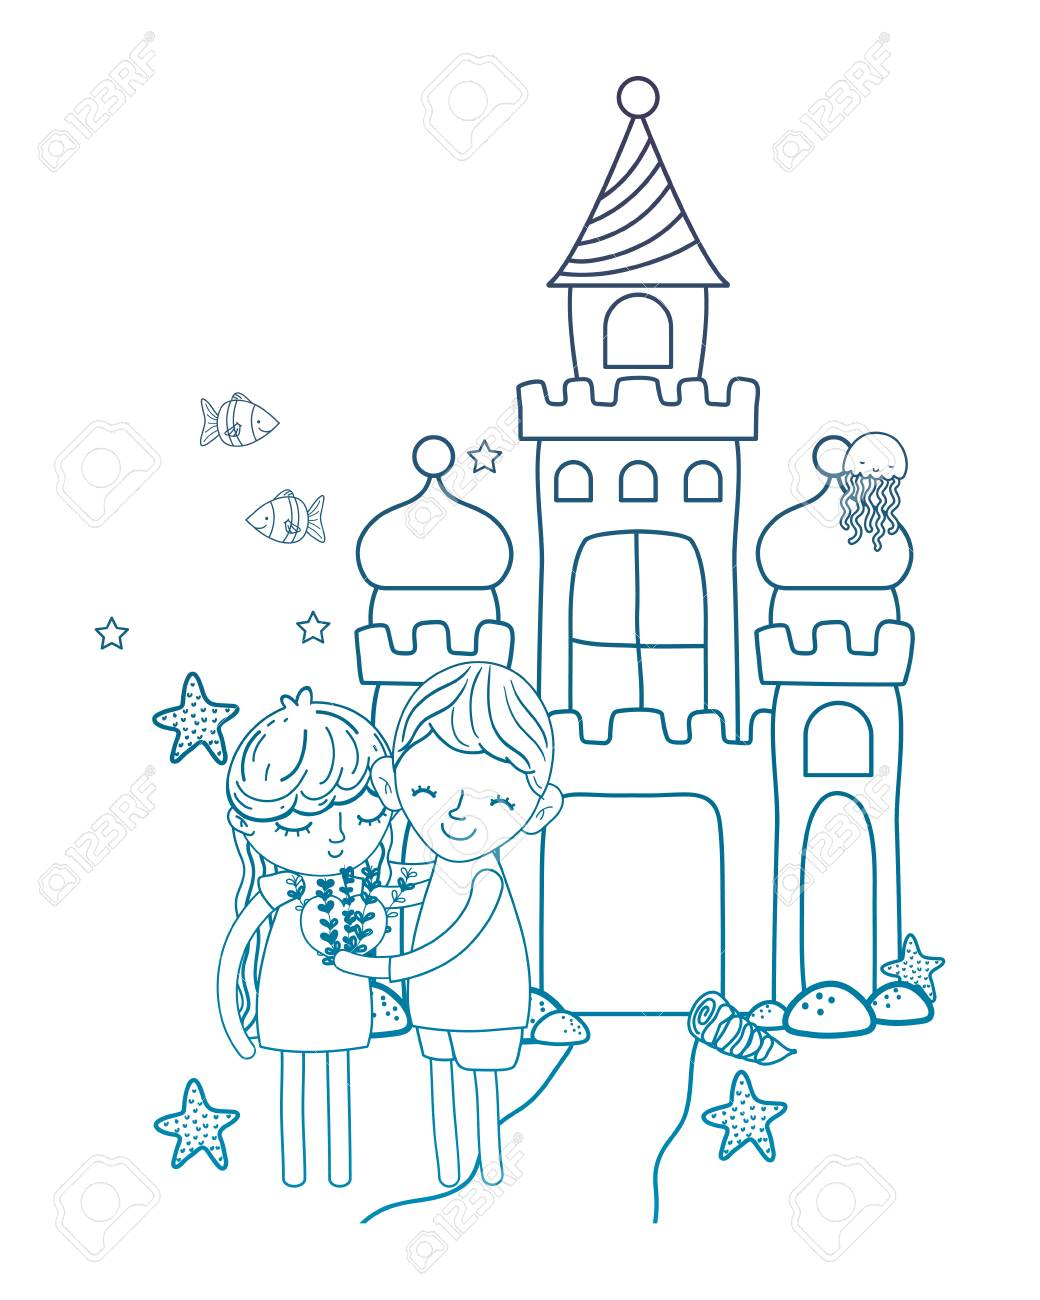 Degraded Outline Boy And Girl With Heart In The Castle Stars Vector Illustration Stock